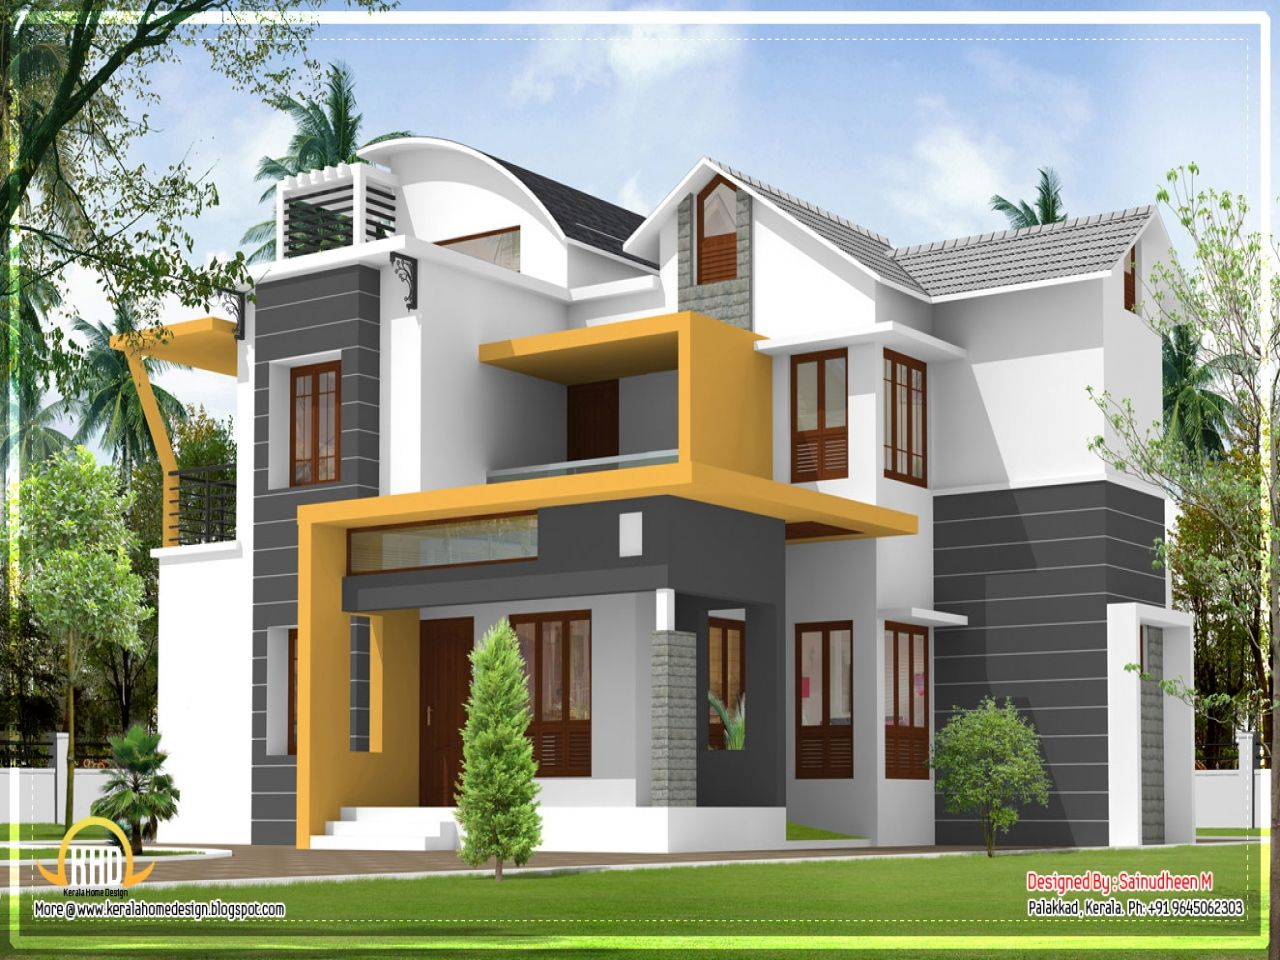 Exterior Design Of Small House In India Hiqra Kerala House